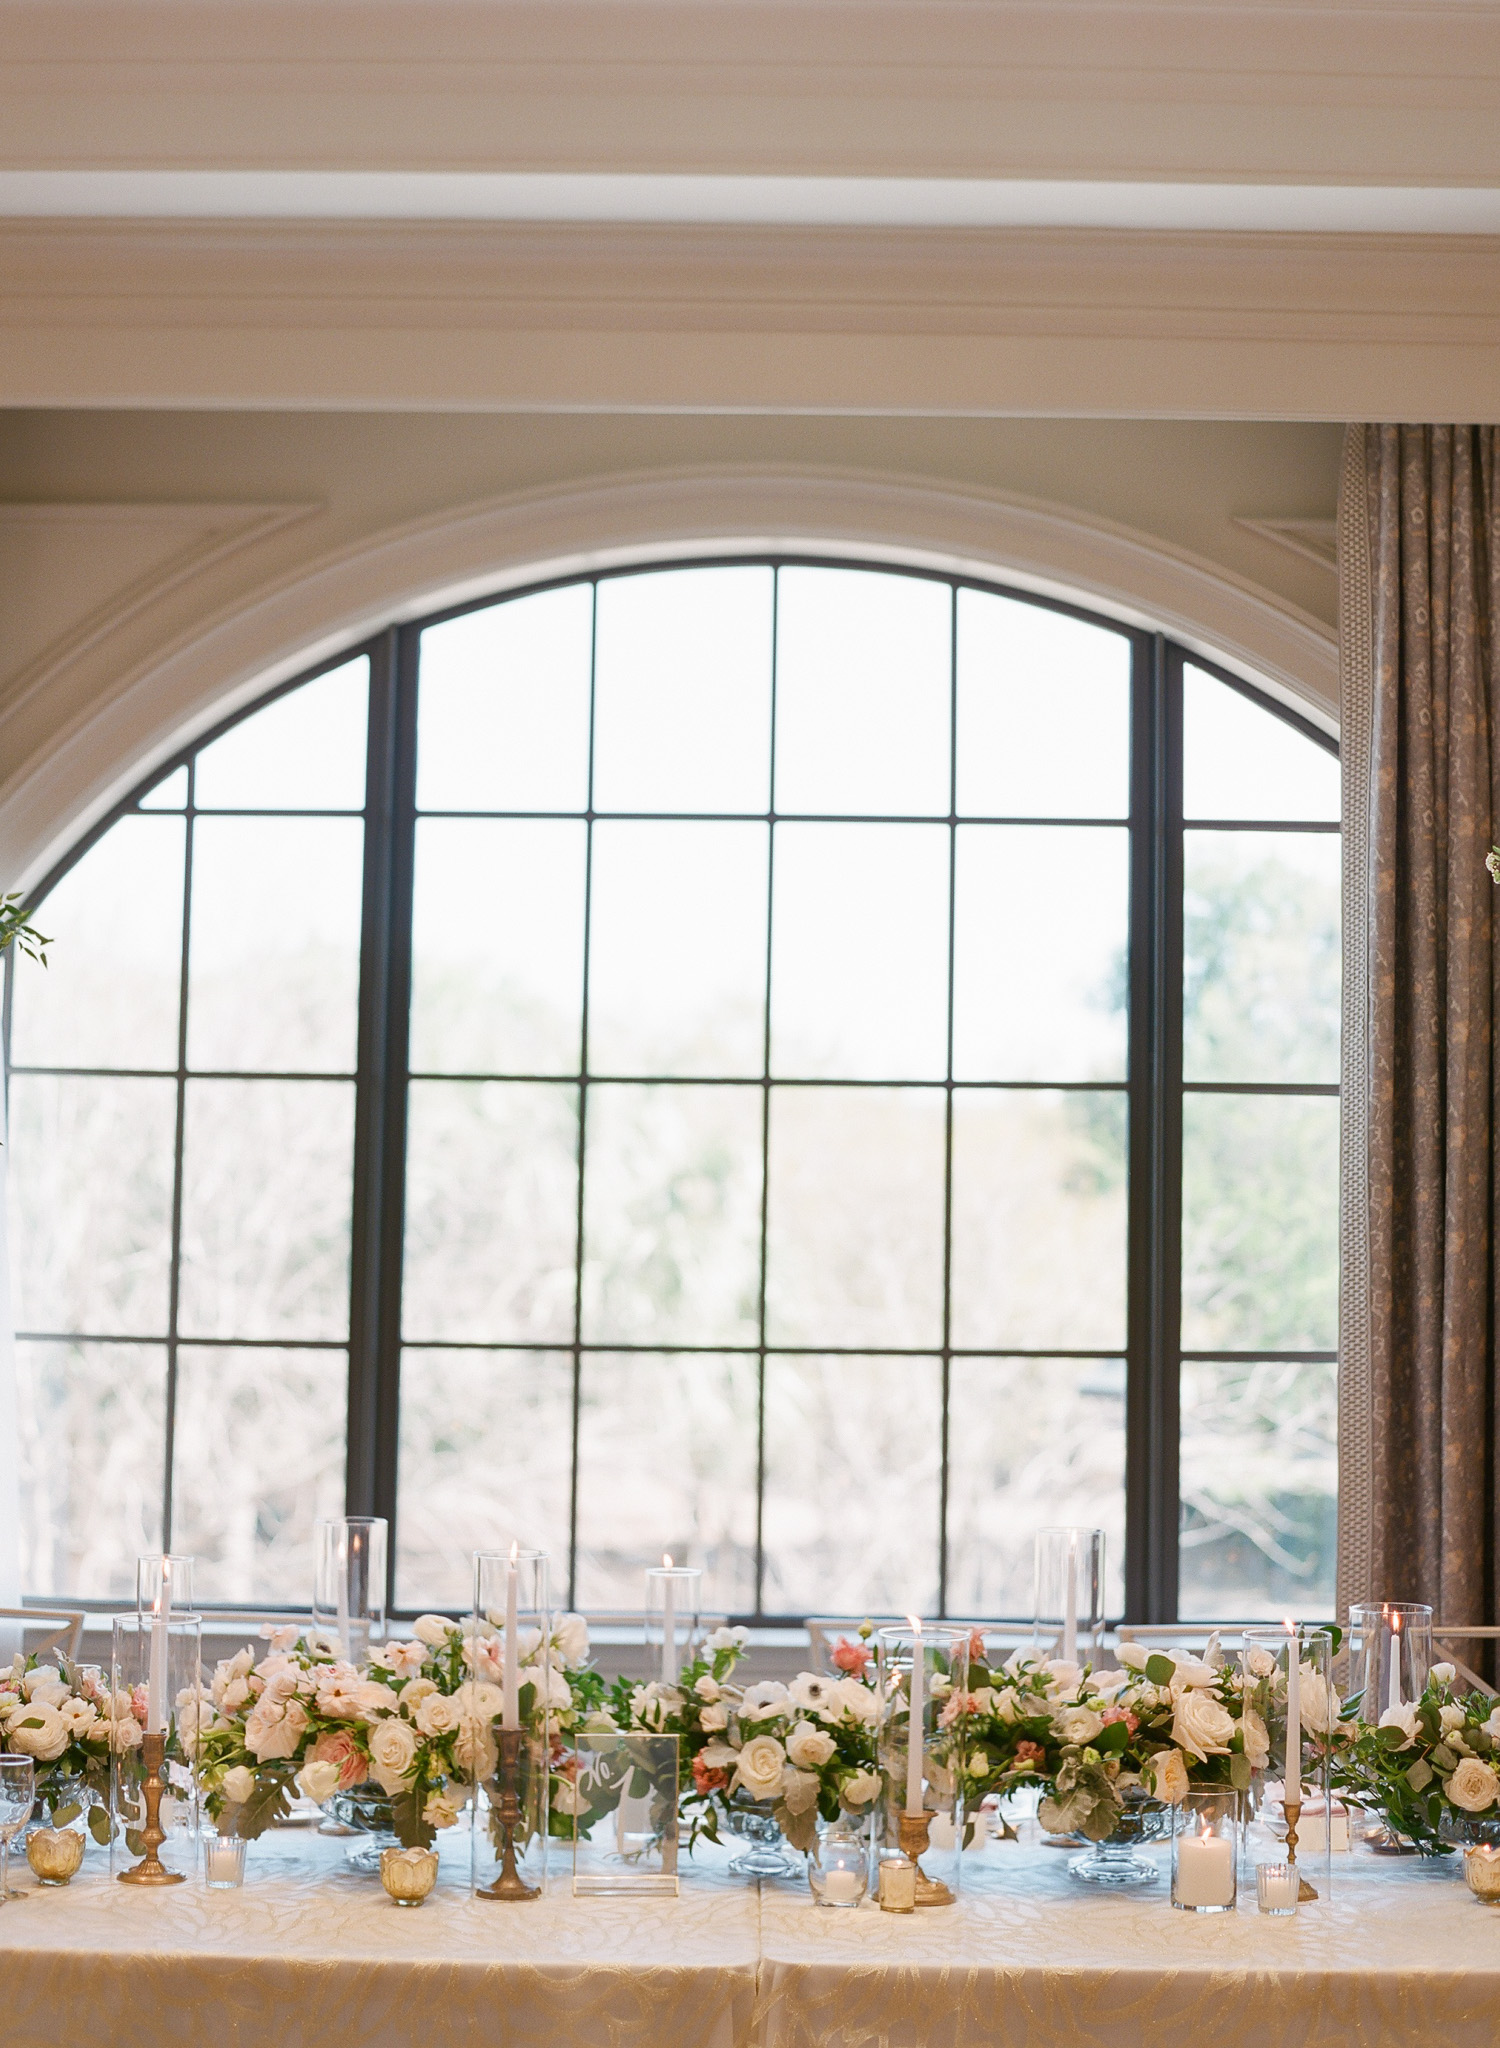 Charleston-Wedding-Hotel-Bennett-104.jpg